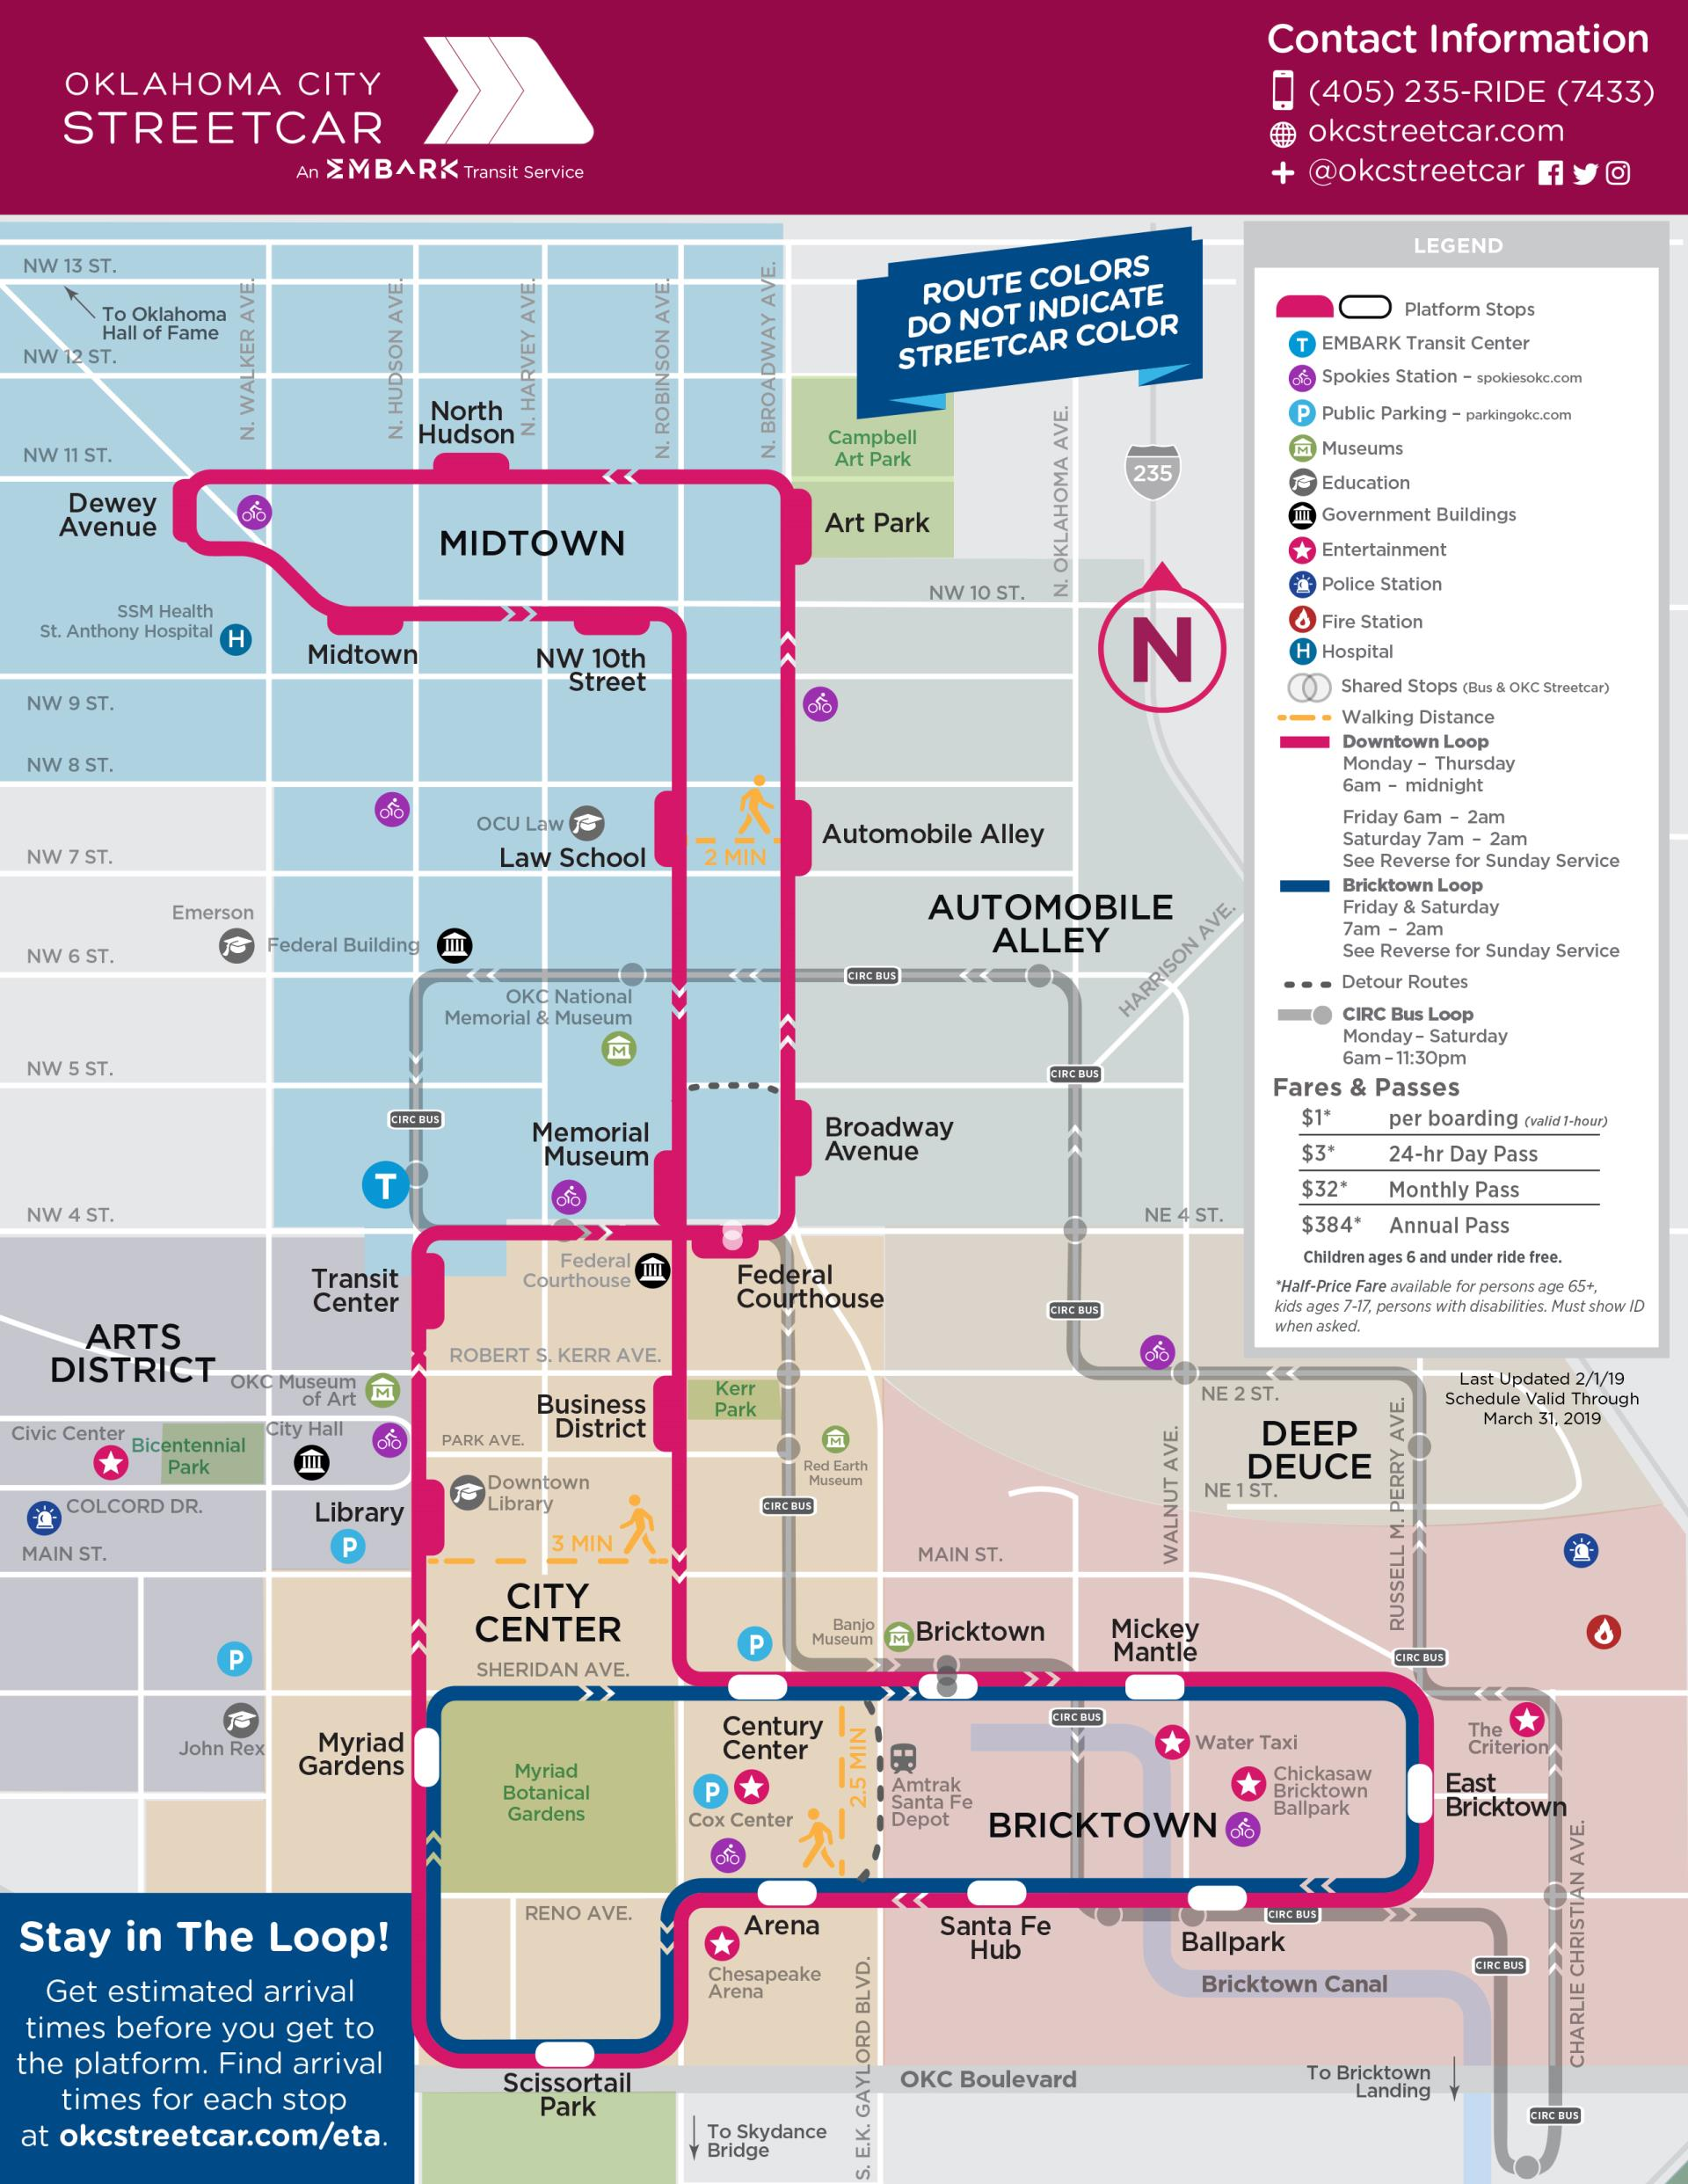 OKC Streetcar Route Map